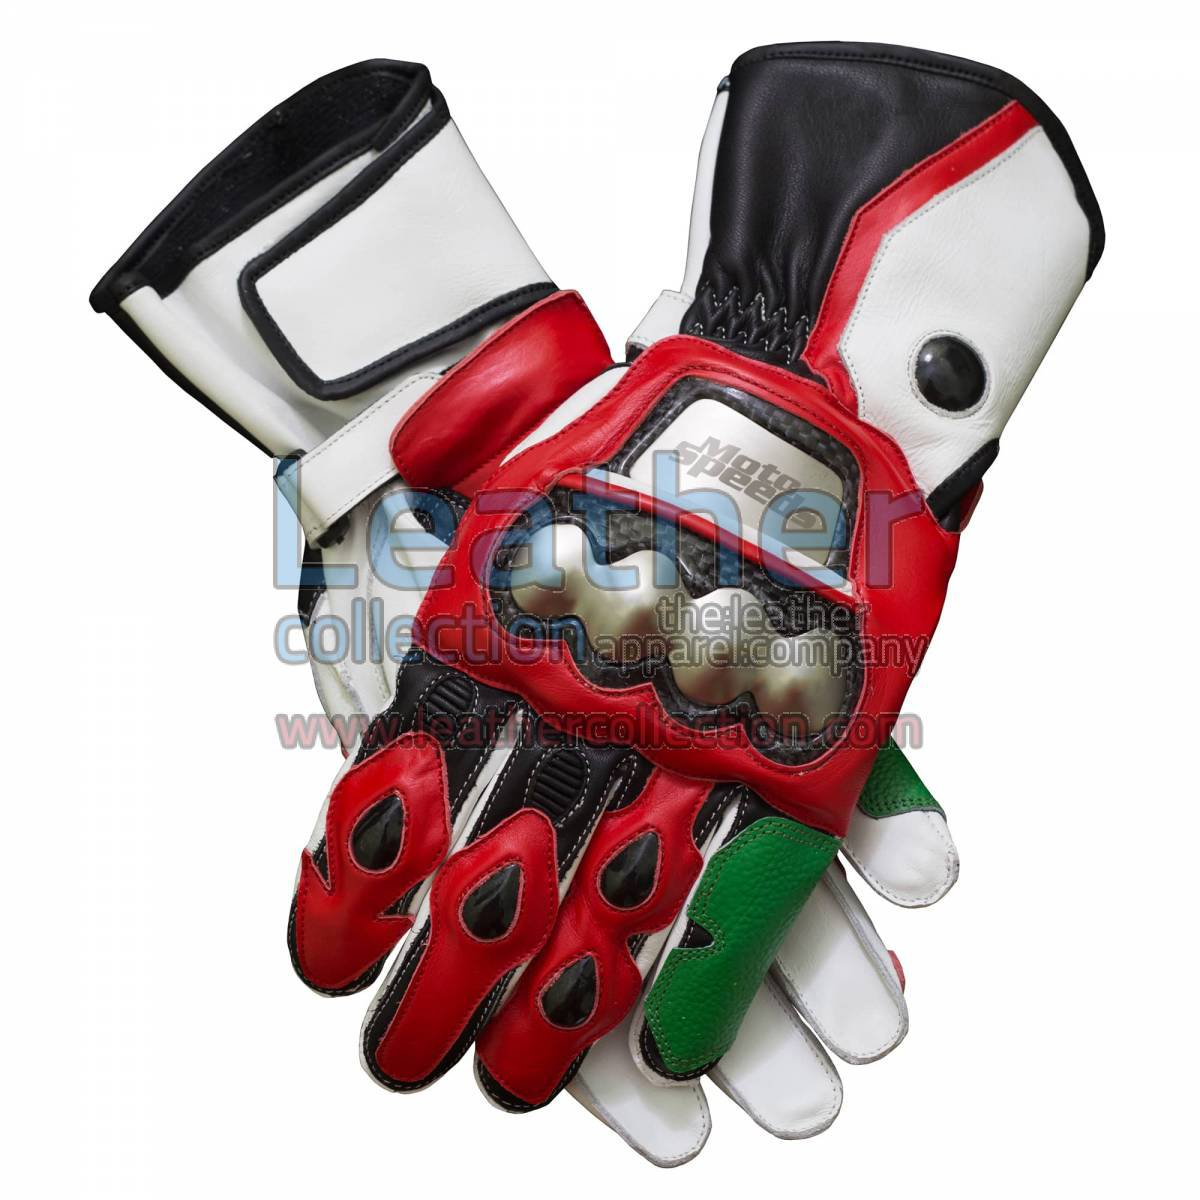 Tom Sykes Kawasaki 2015 MotoGP Gloves